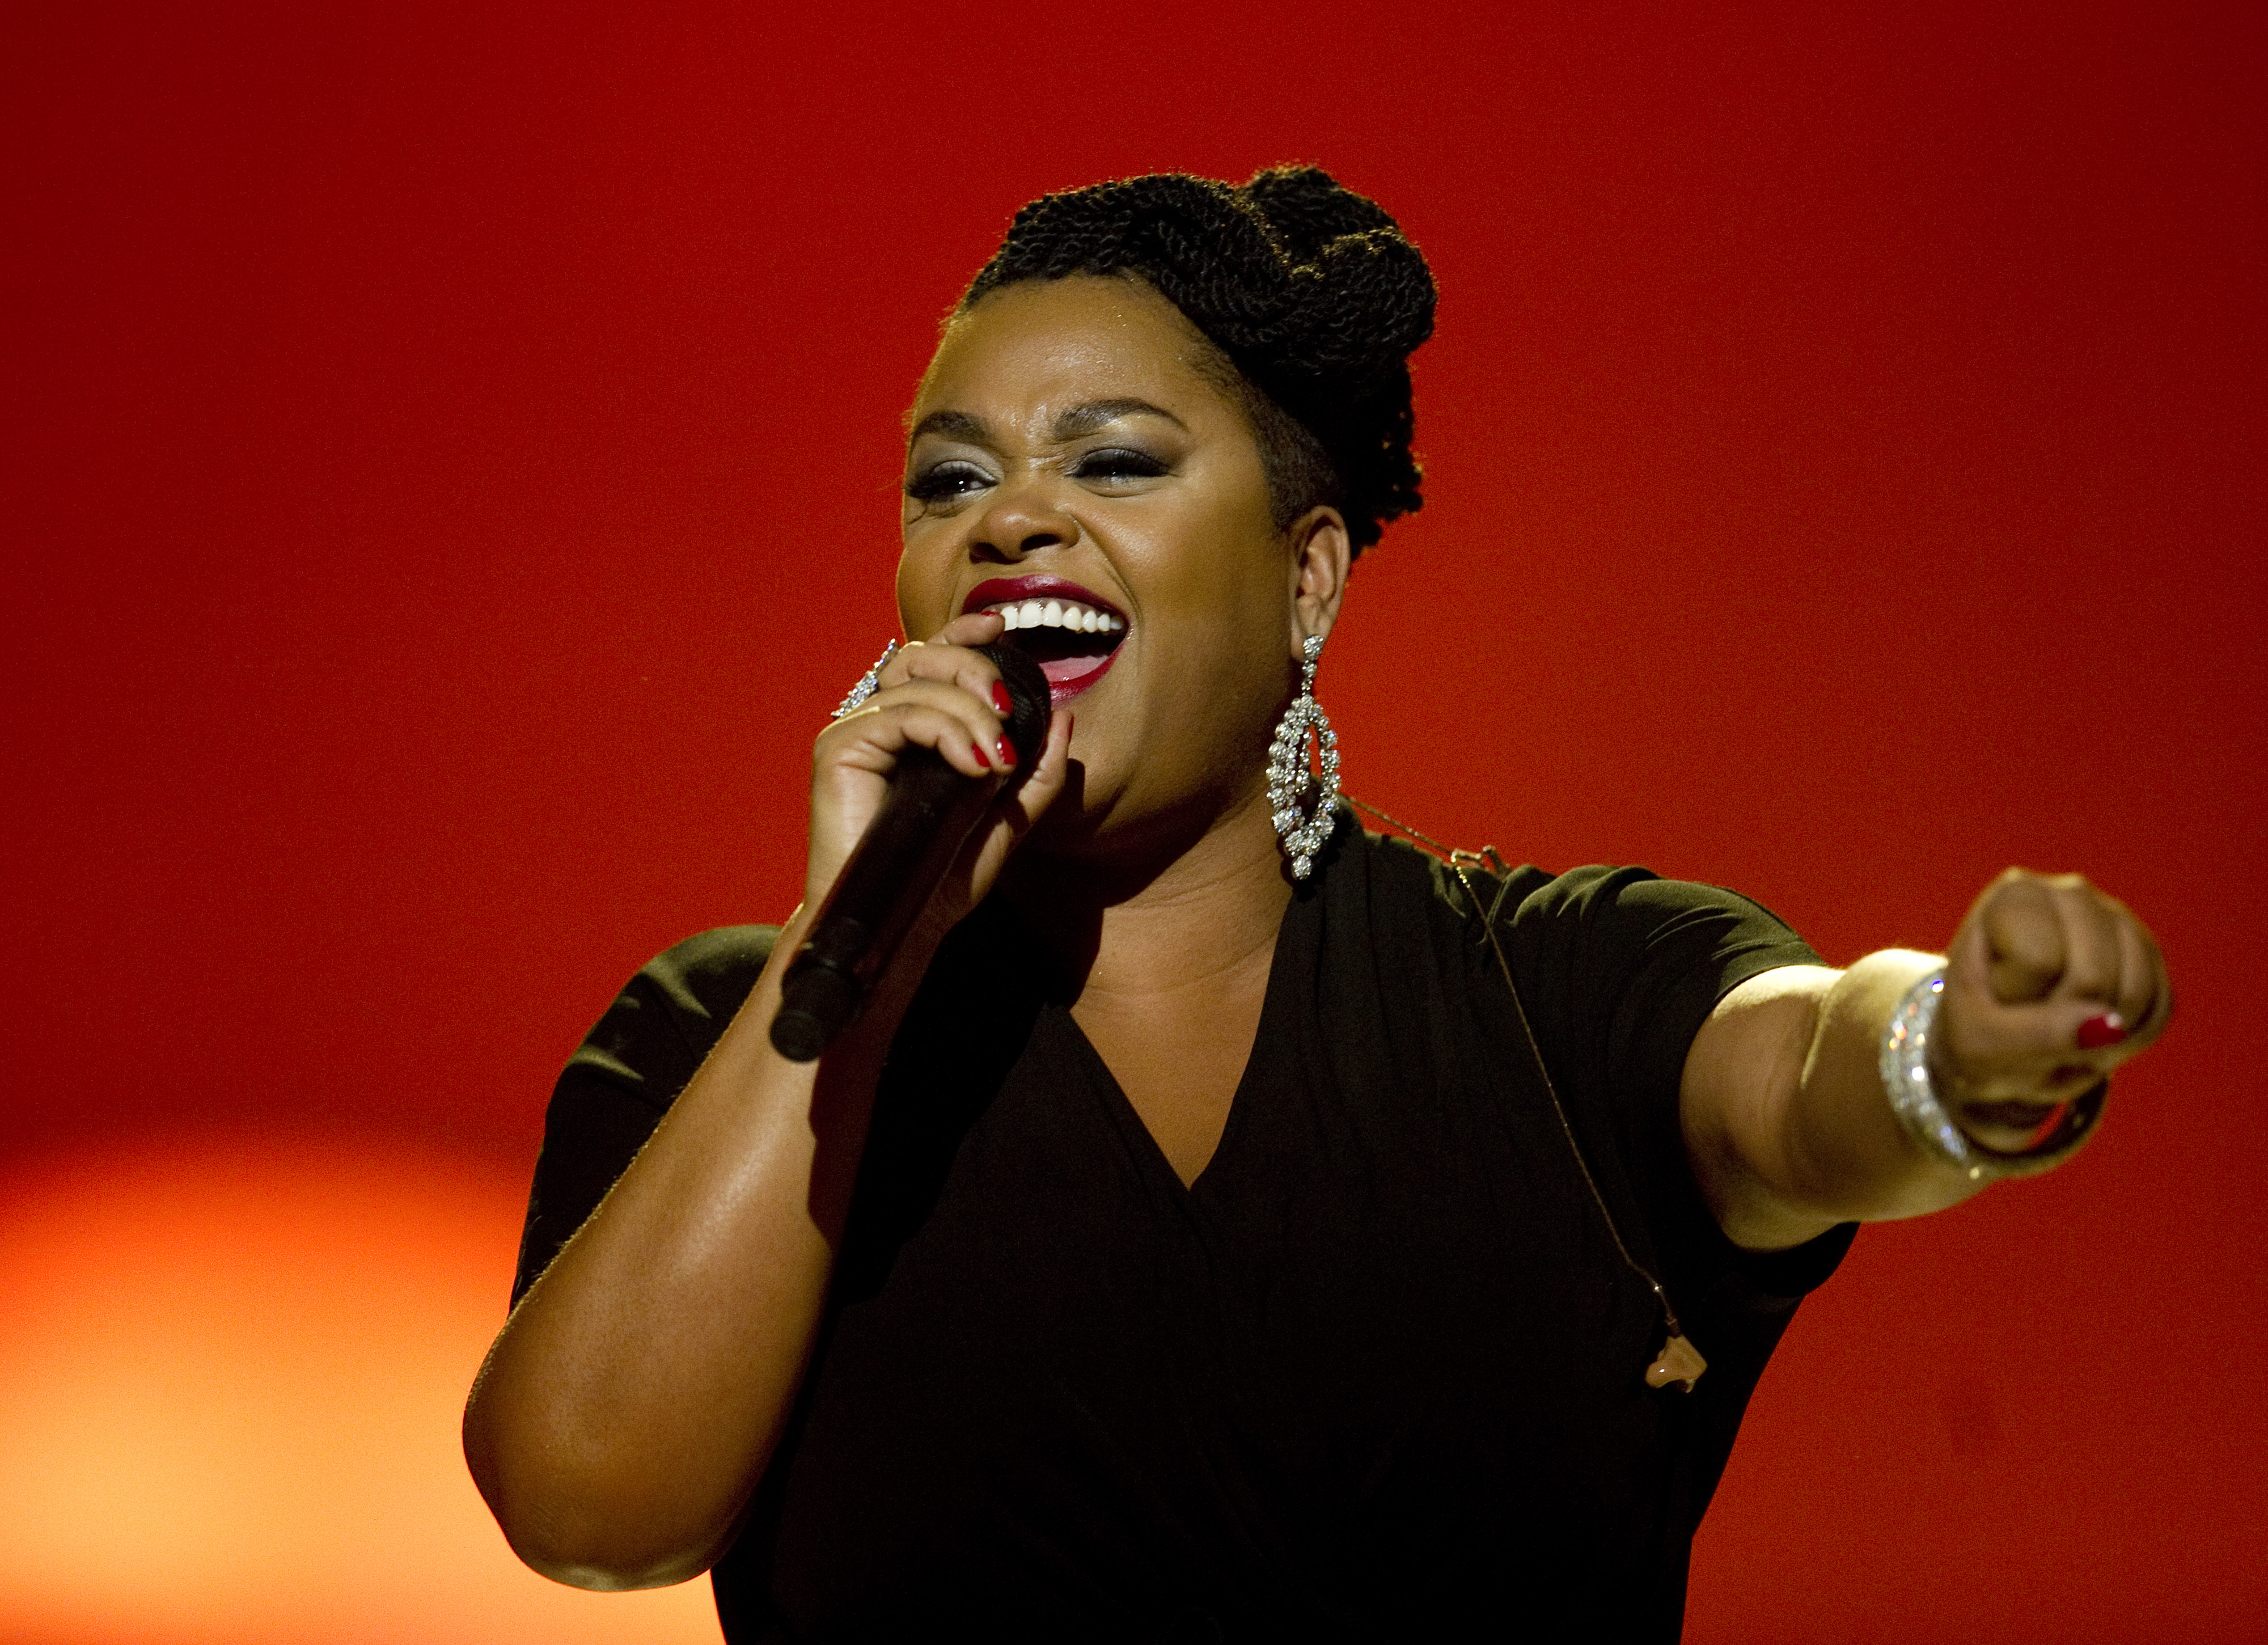 Jill Scott nude (43 images) Video, YouTube, swimsuit